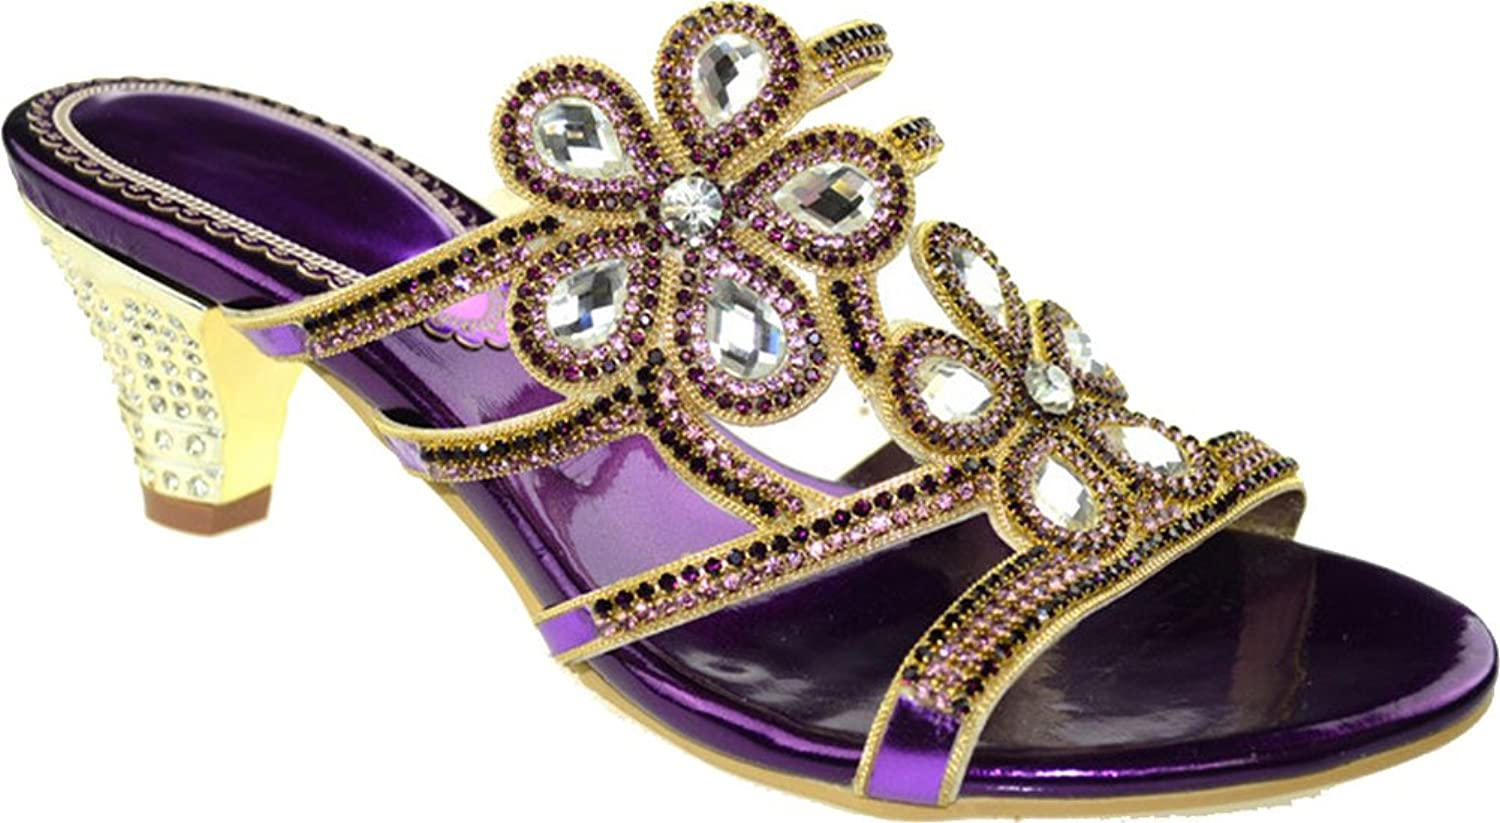 Vimedea Womens Purple Slippers Wedding Bride Party Prom Job Rhinestone Mid Heel Slip on Open Toe Sandals T016